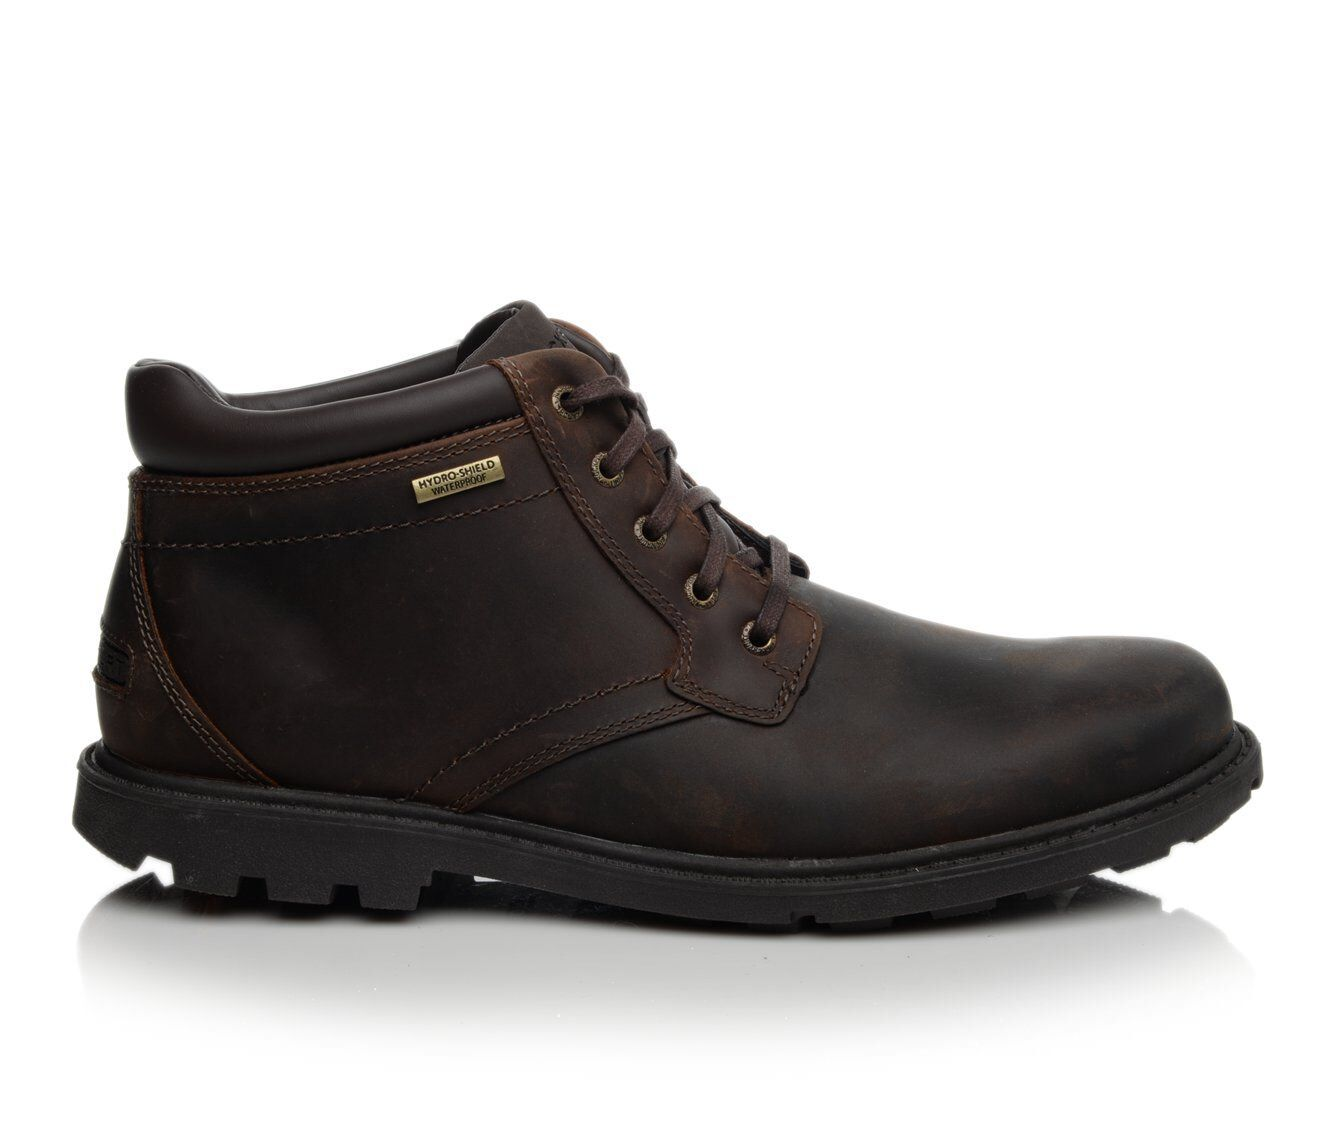 new fashion Men's Rockport Storm Surge Boots Brown